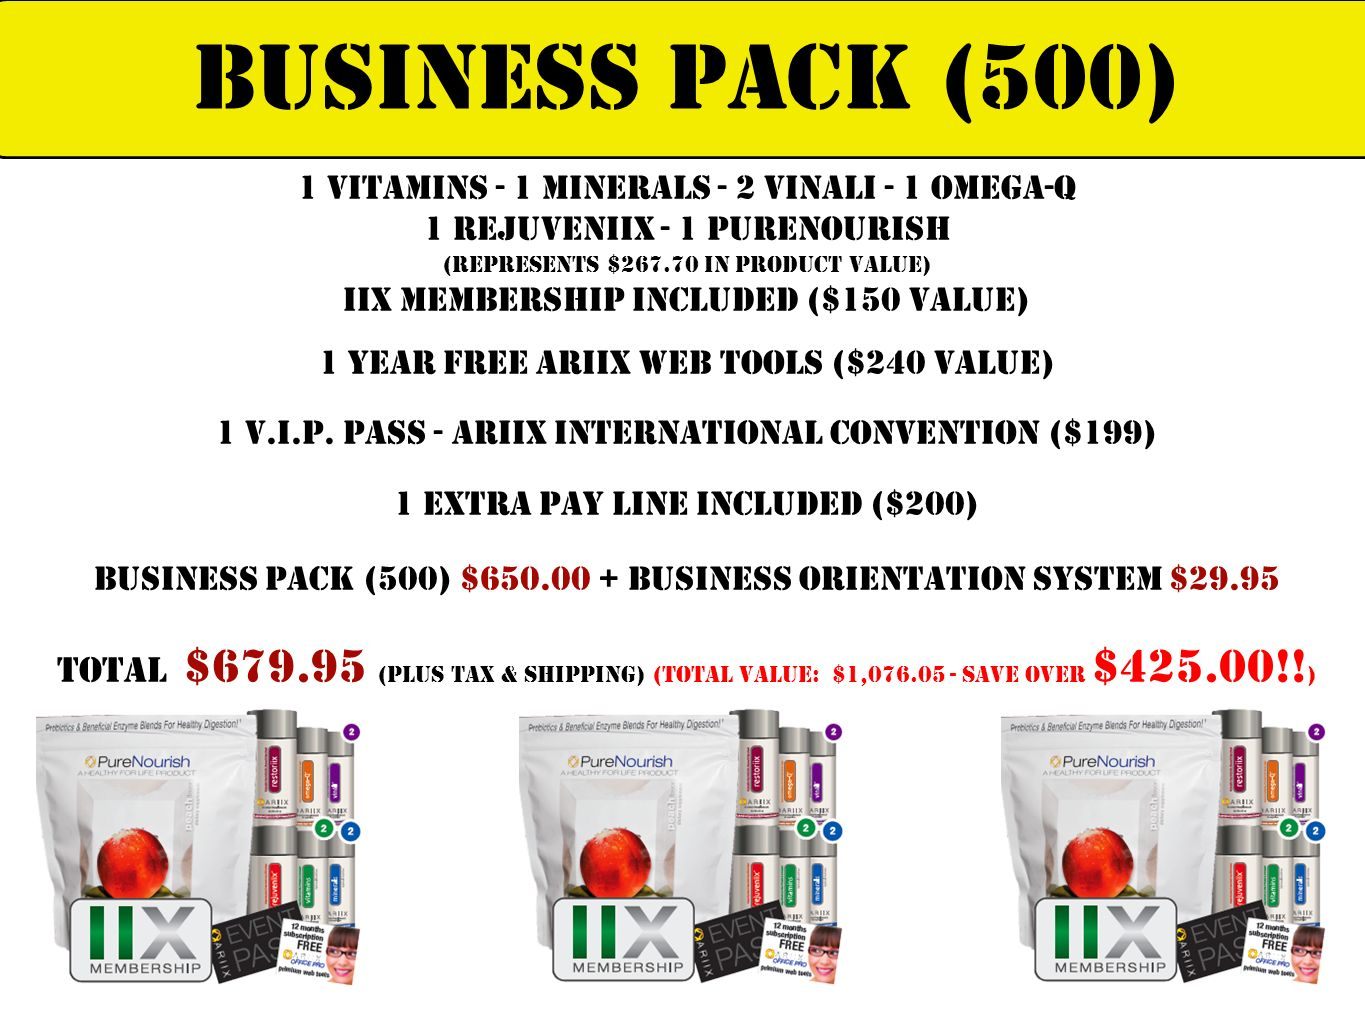 Business Pack (500) 1 Vitamins - 1 Minerals - 2 Vinali - 1 Omega-Q. 1 Rejuveniix - 1 PureNourish. (Represents $ in Product Value)